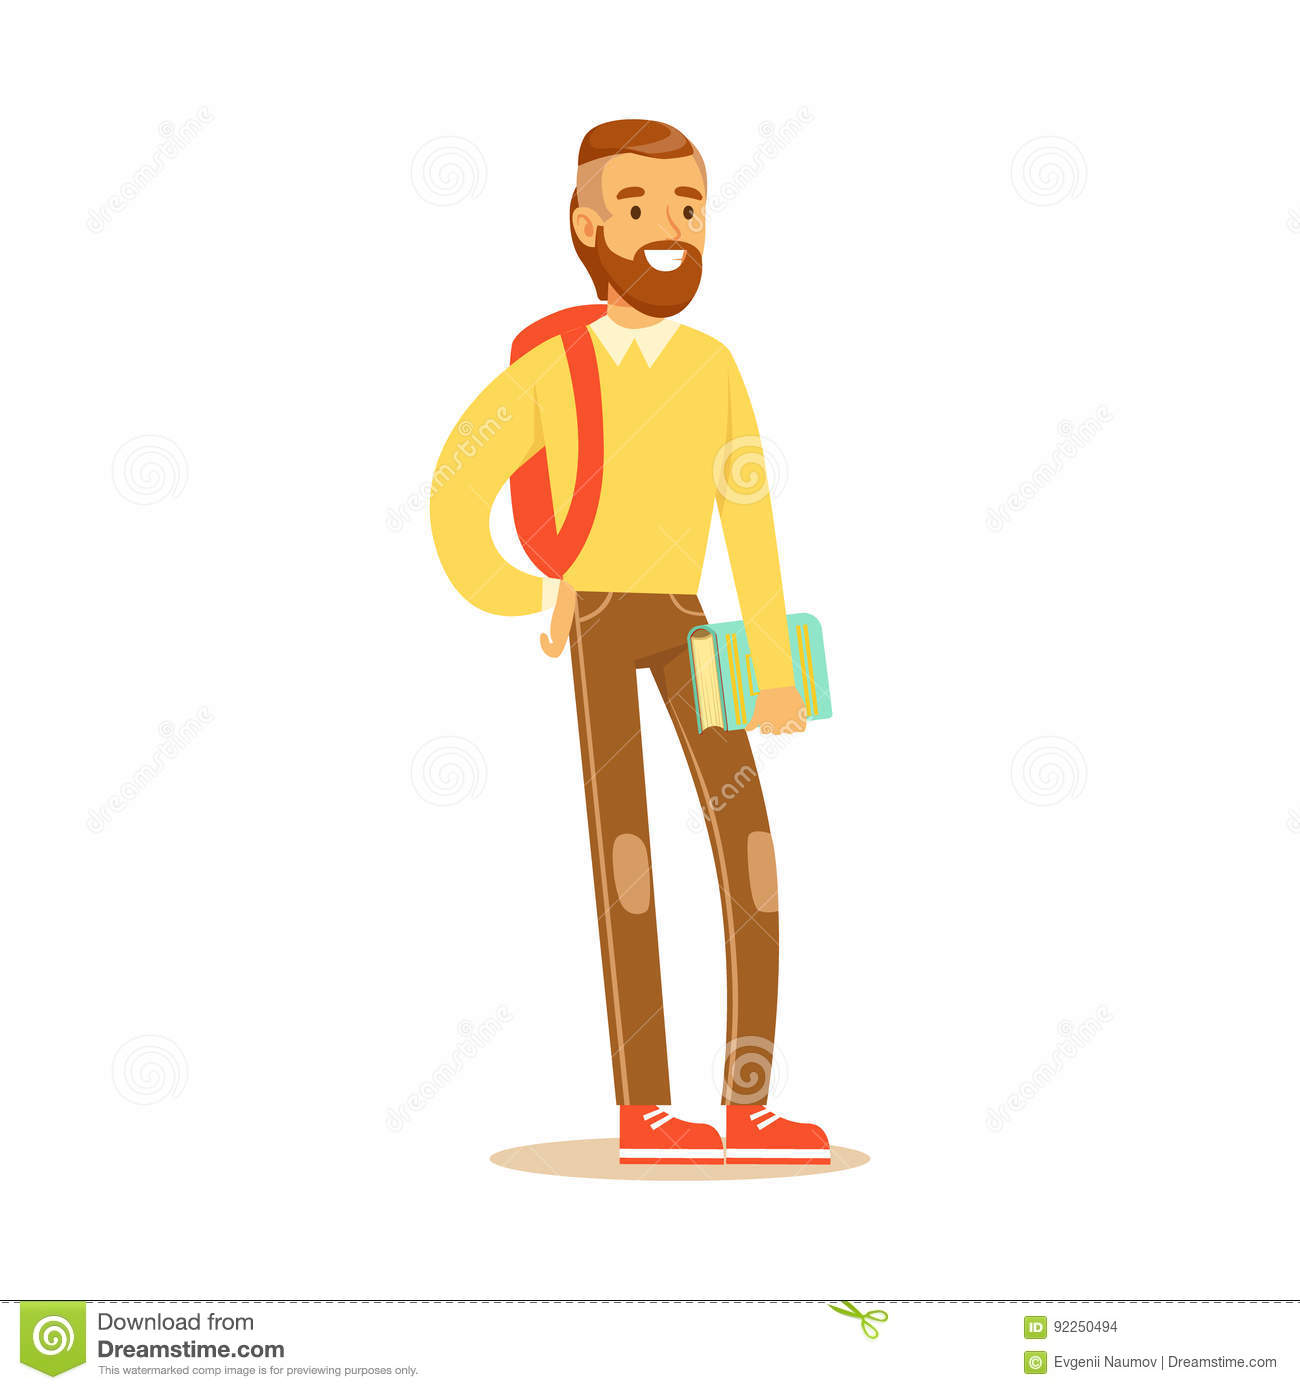 Young bearded man in casual clothes with backpack standing and holding book in his hand. Student lifestyle colorful